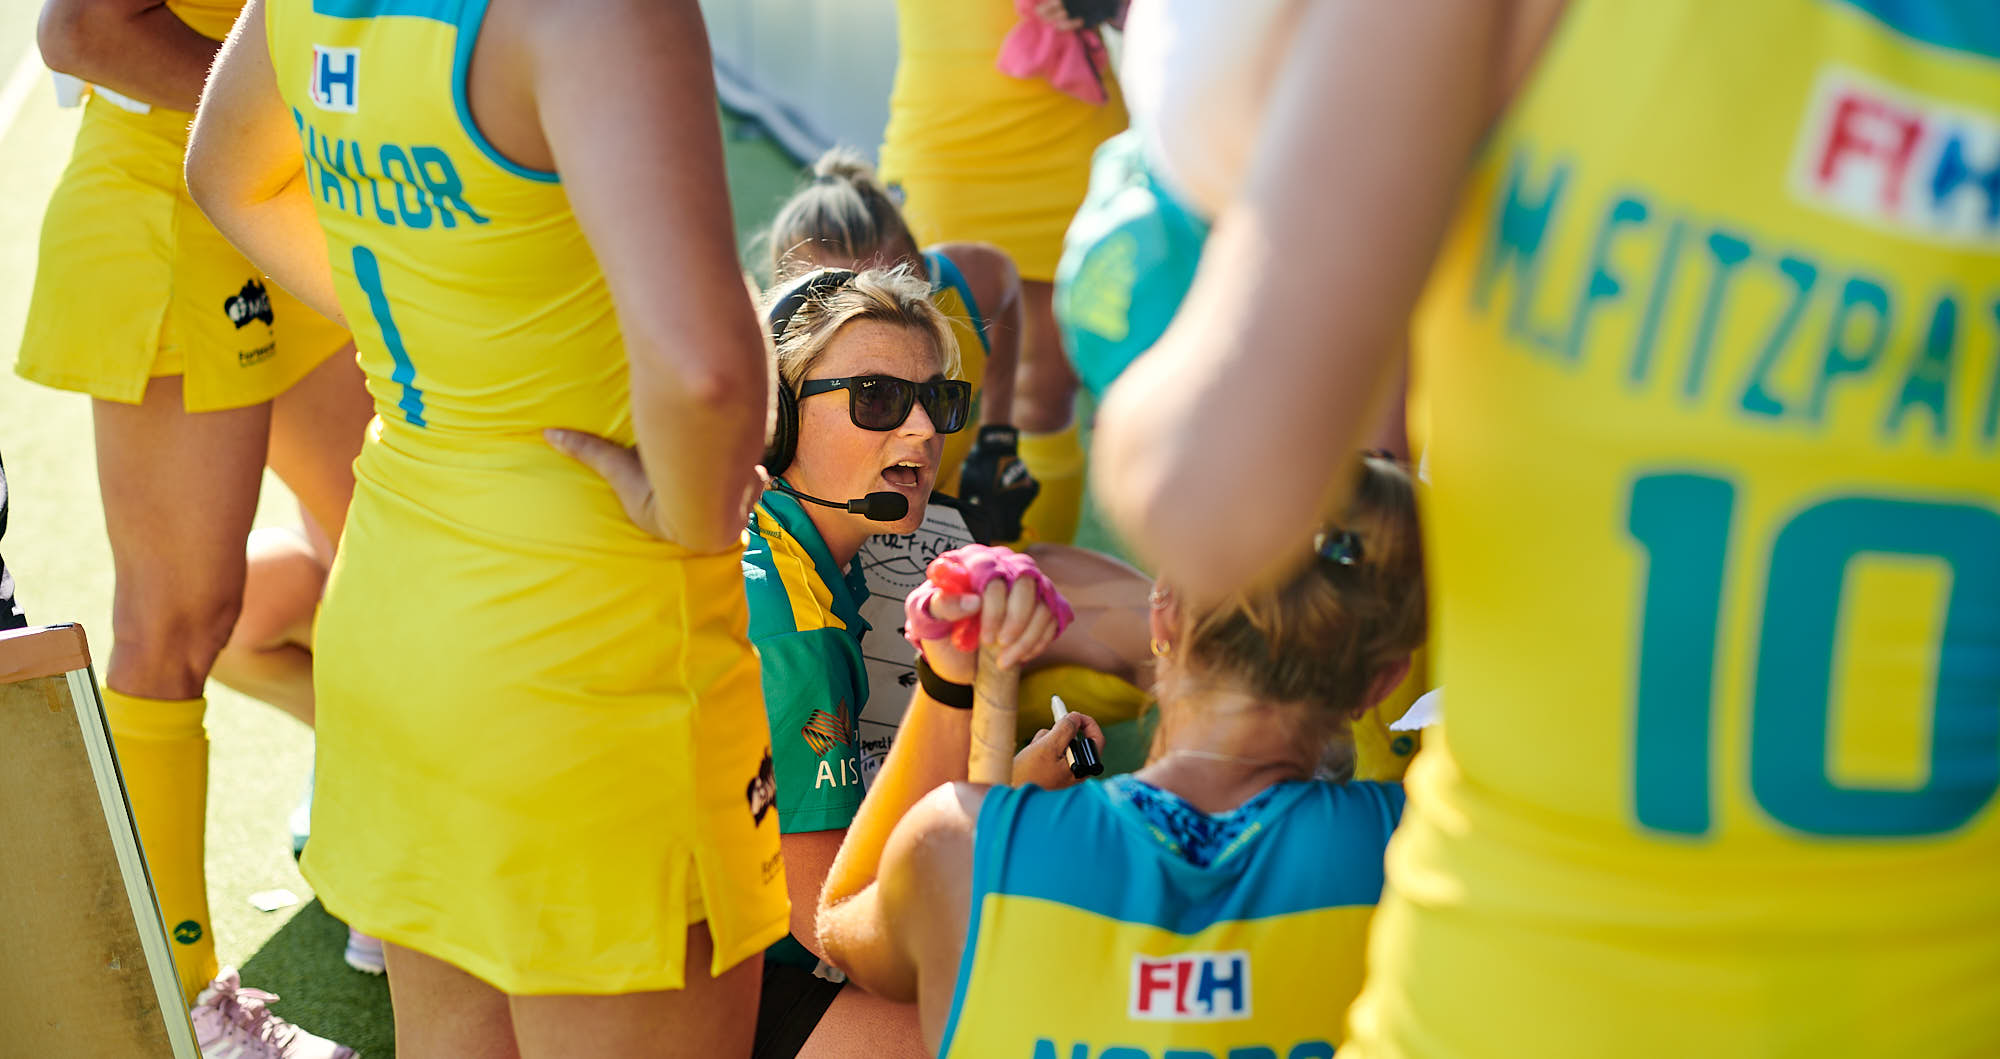 Australian national hockey team coach giving instructions during the 2019 FIH Pro league finals in Amsterdam